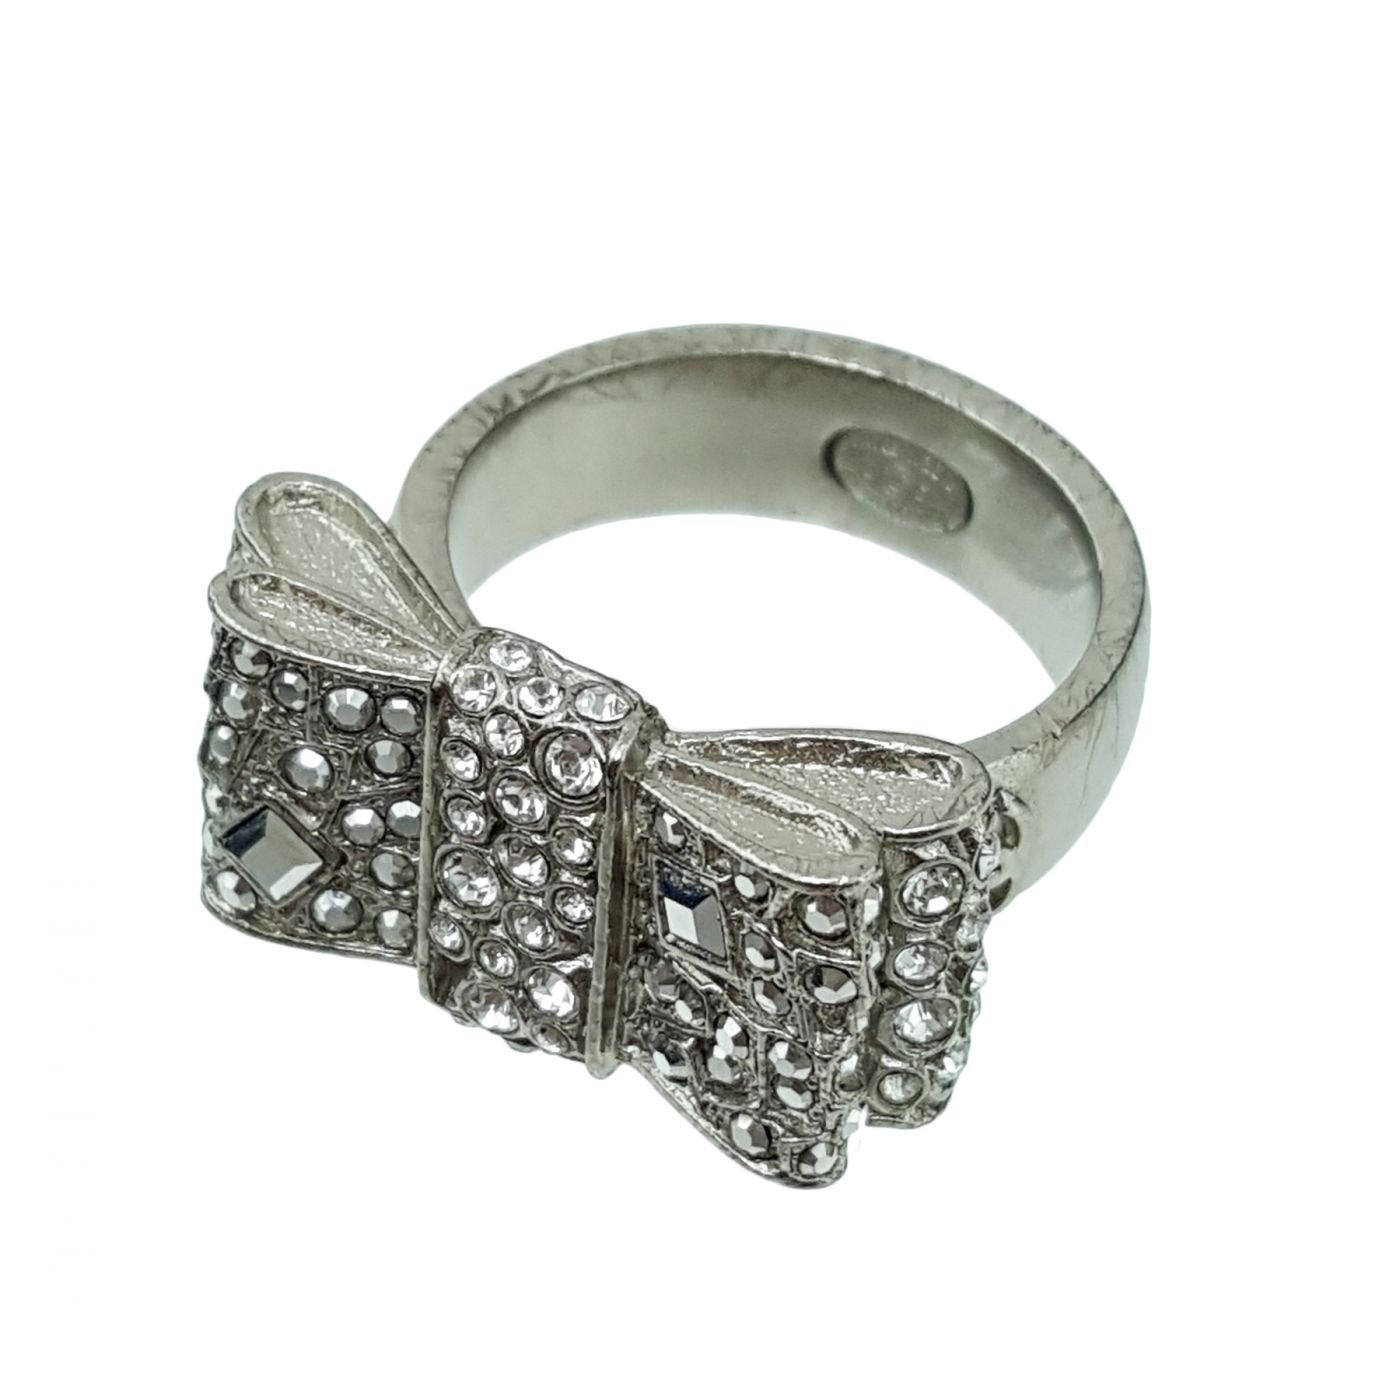 Chanel Silver Finish Bow Ring 7